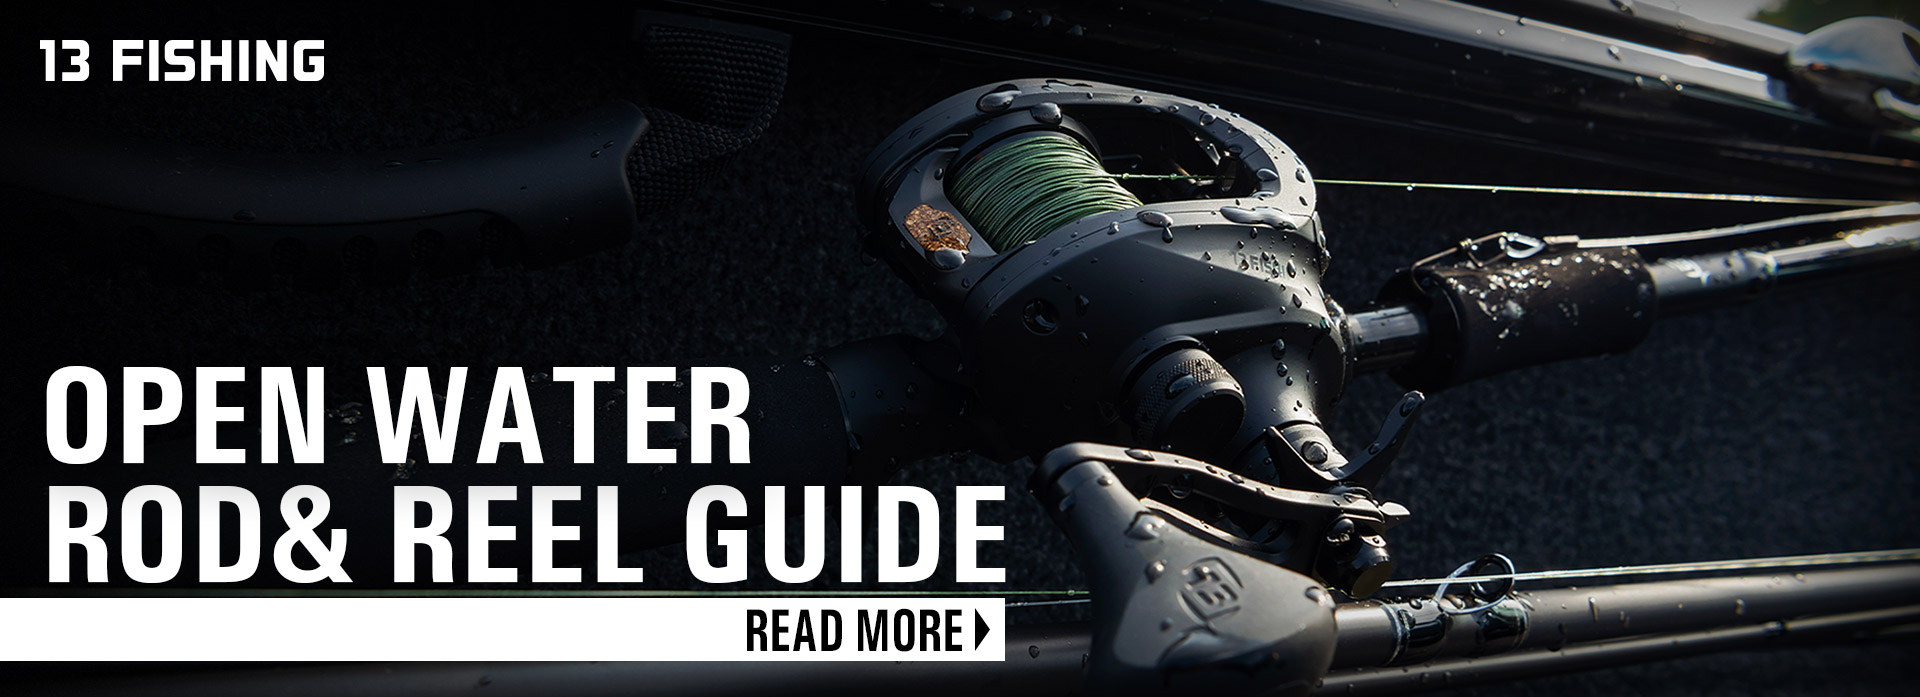 13 Fishing Open Water Rod and Reel Buyers Guide